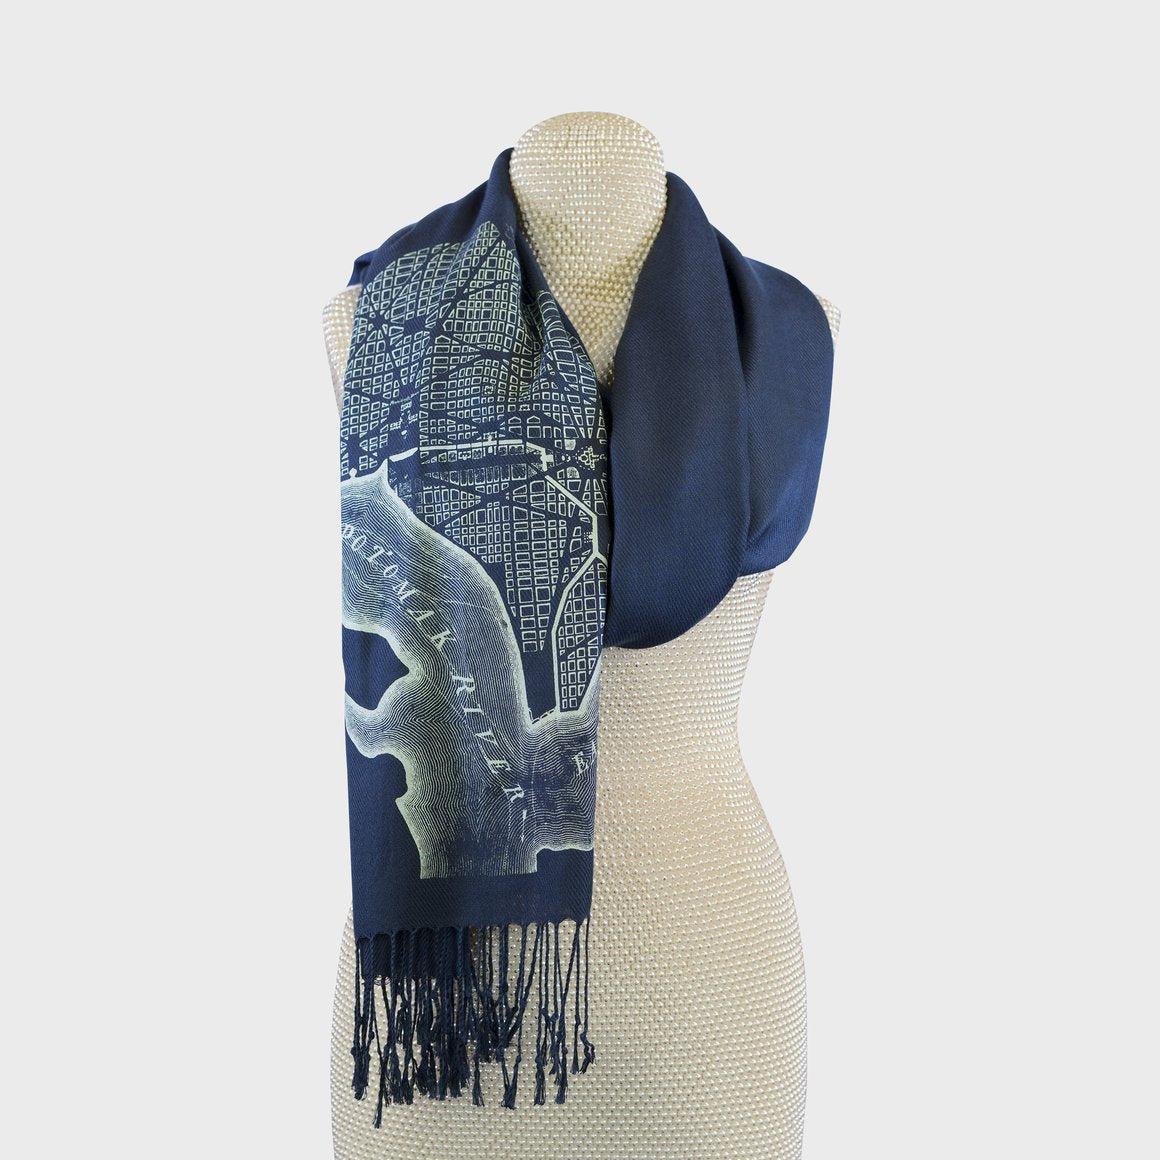 Vintage City Map Scarves